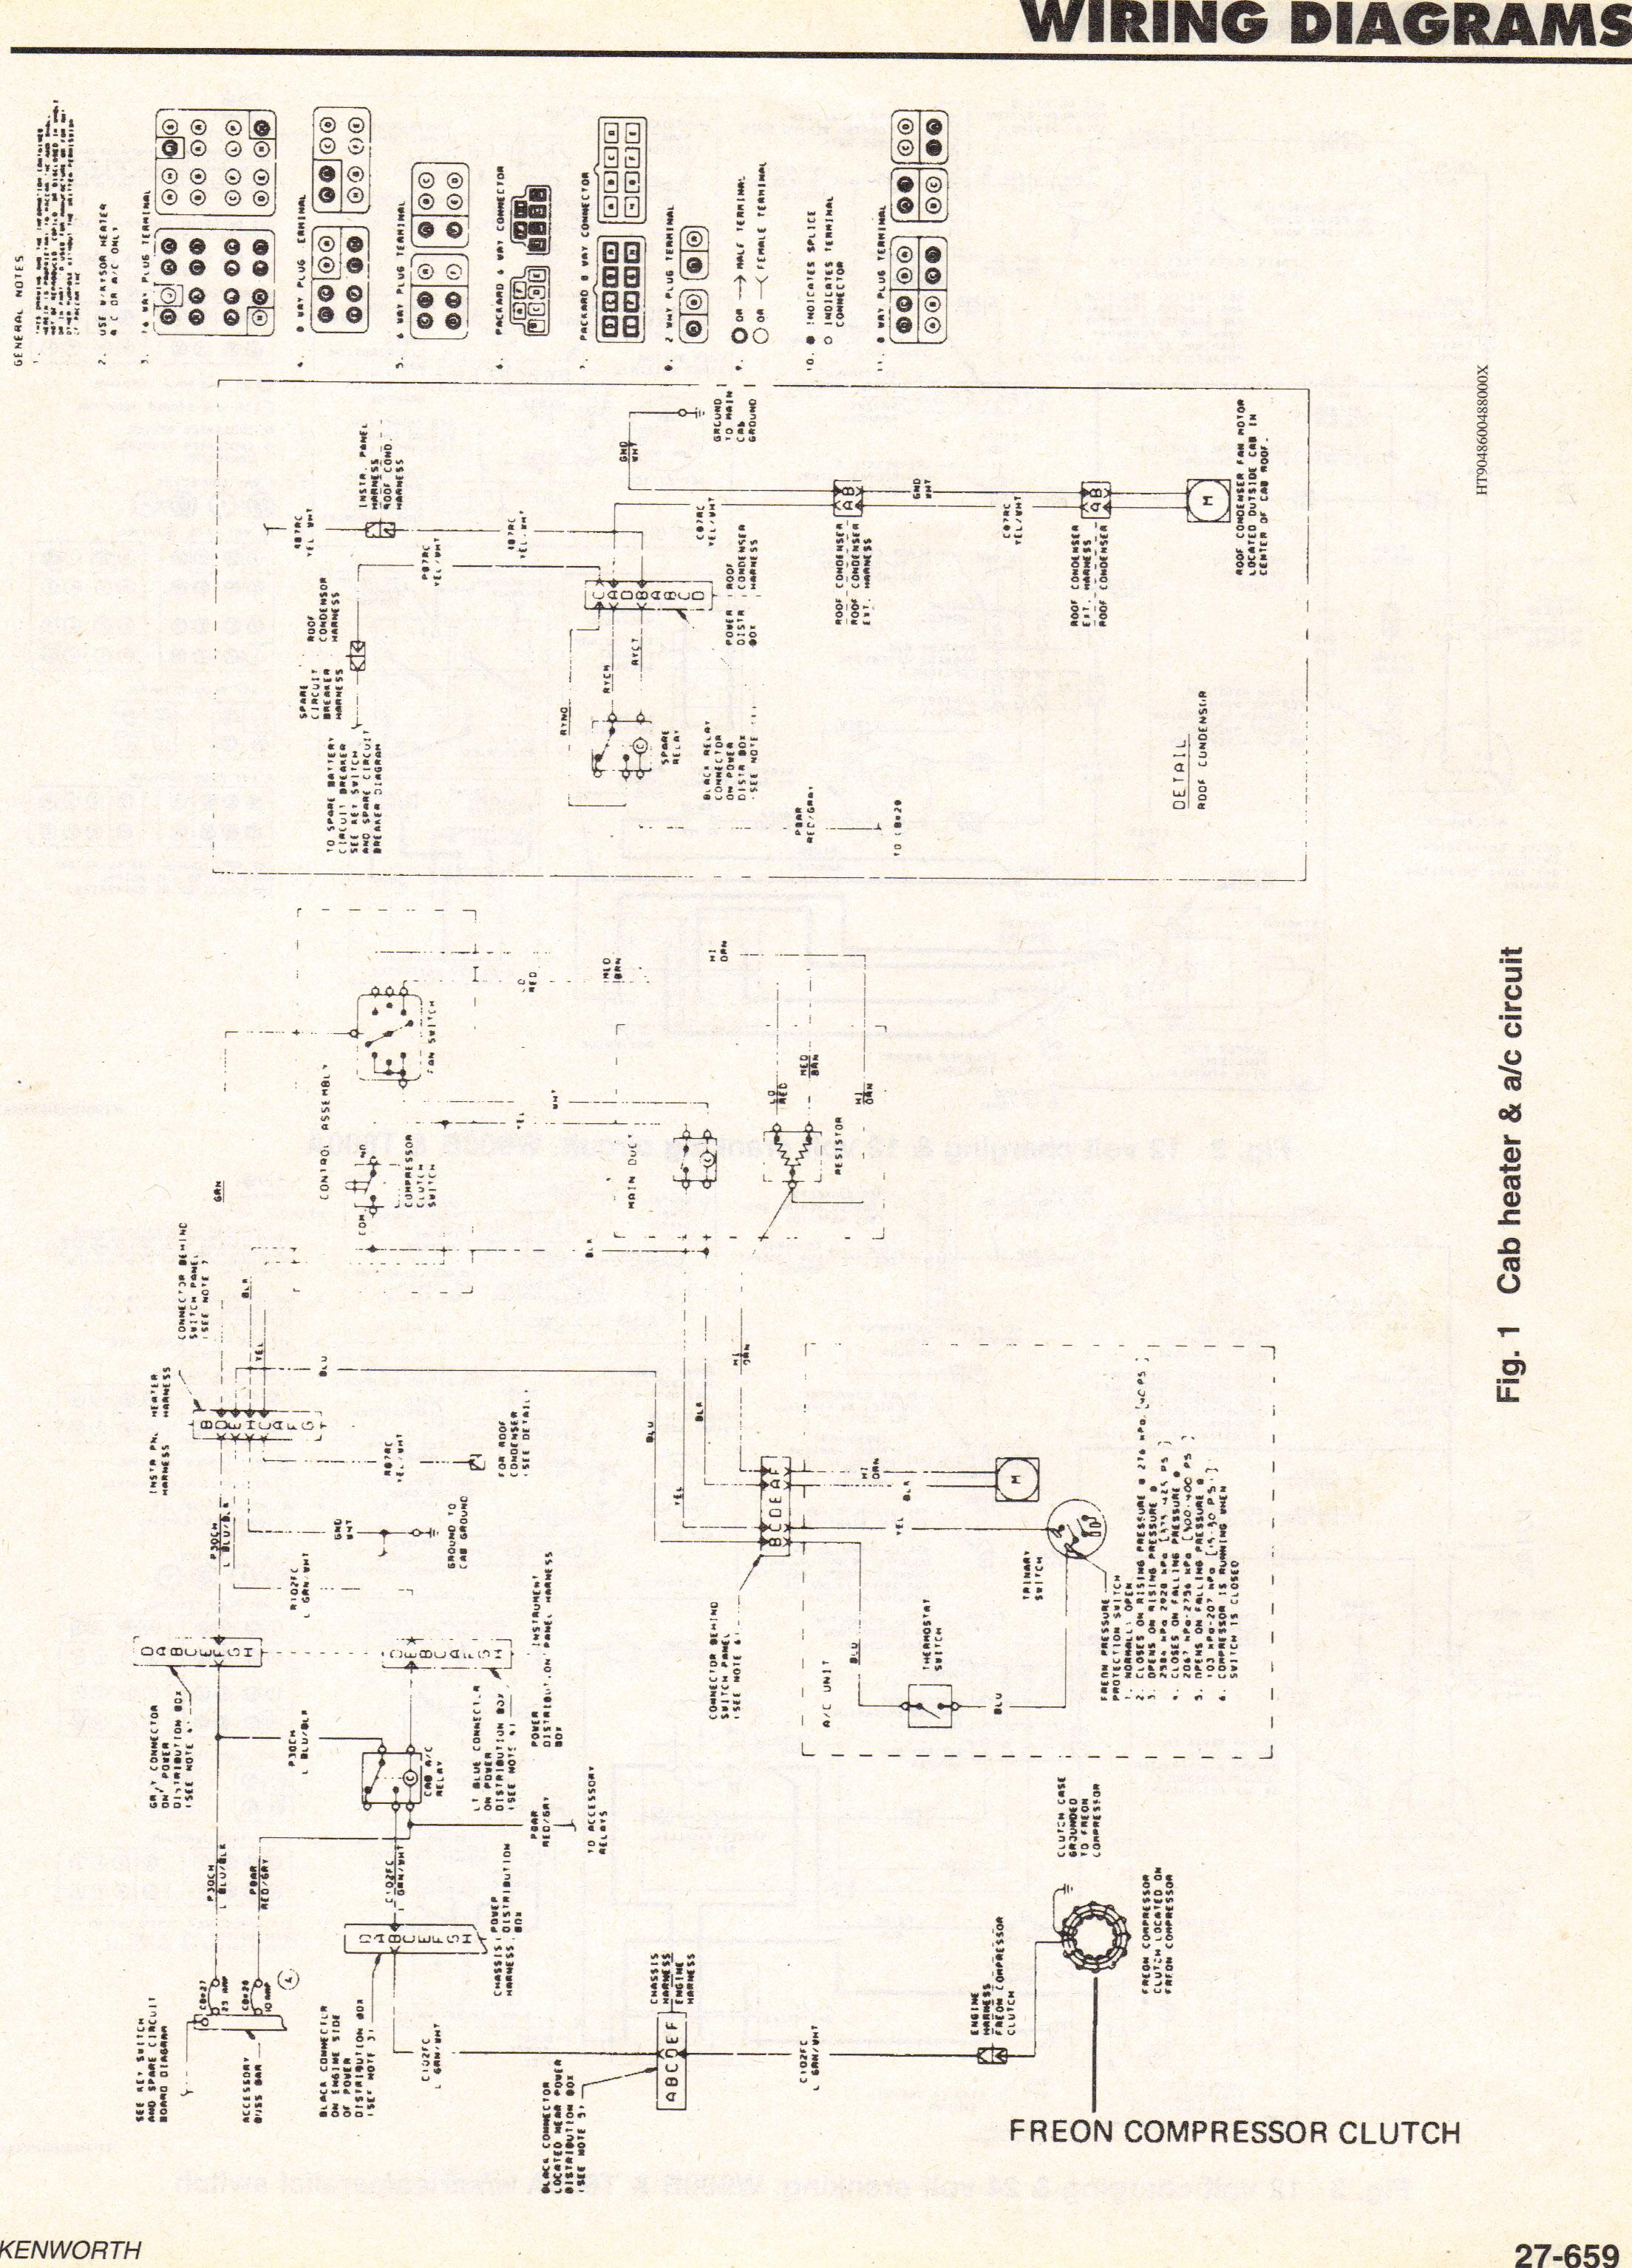 [DIAGRAM_4PO]  CT_5998] Kenworth W900 Fuse Box Location Moreover Kenworth T800 Light Wiring  Wiring Diagram | Kenworth W900 Wiring Schematic Diagrams |  | Nedly Lave Vell Jebrp Mohammedshrine Librar Wiring 101